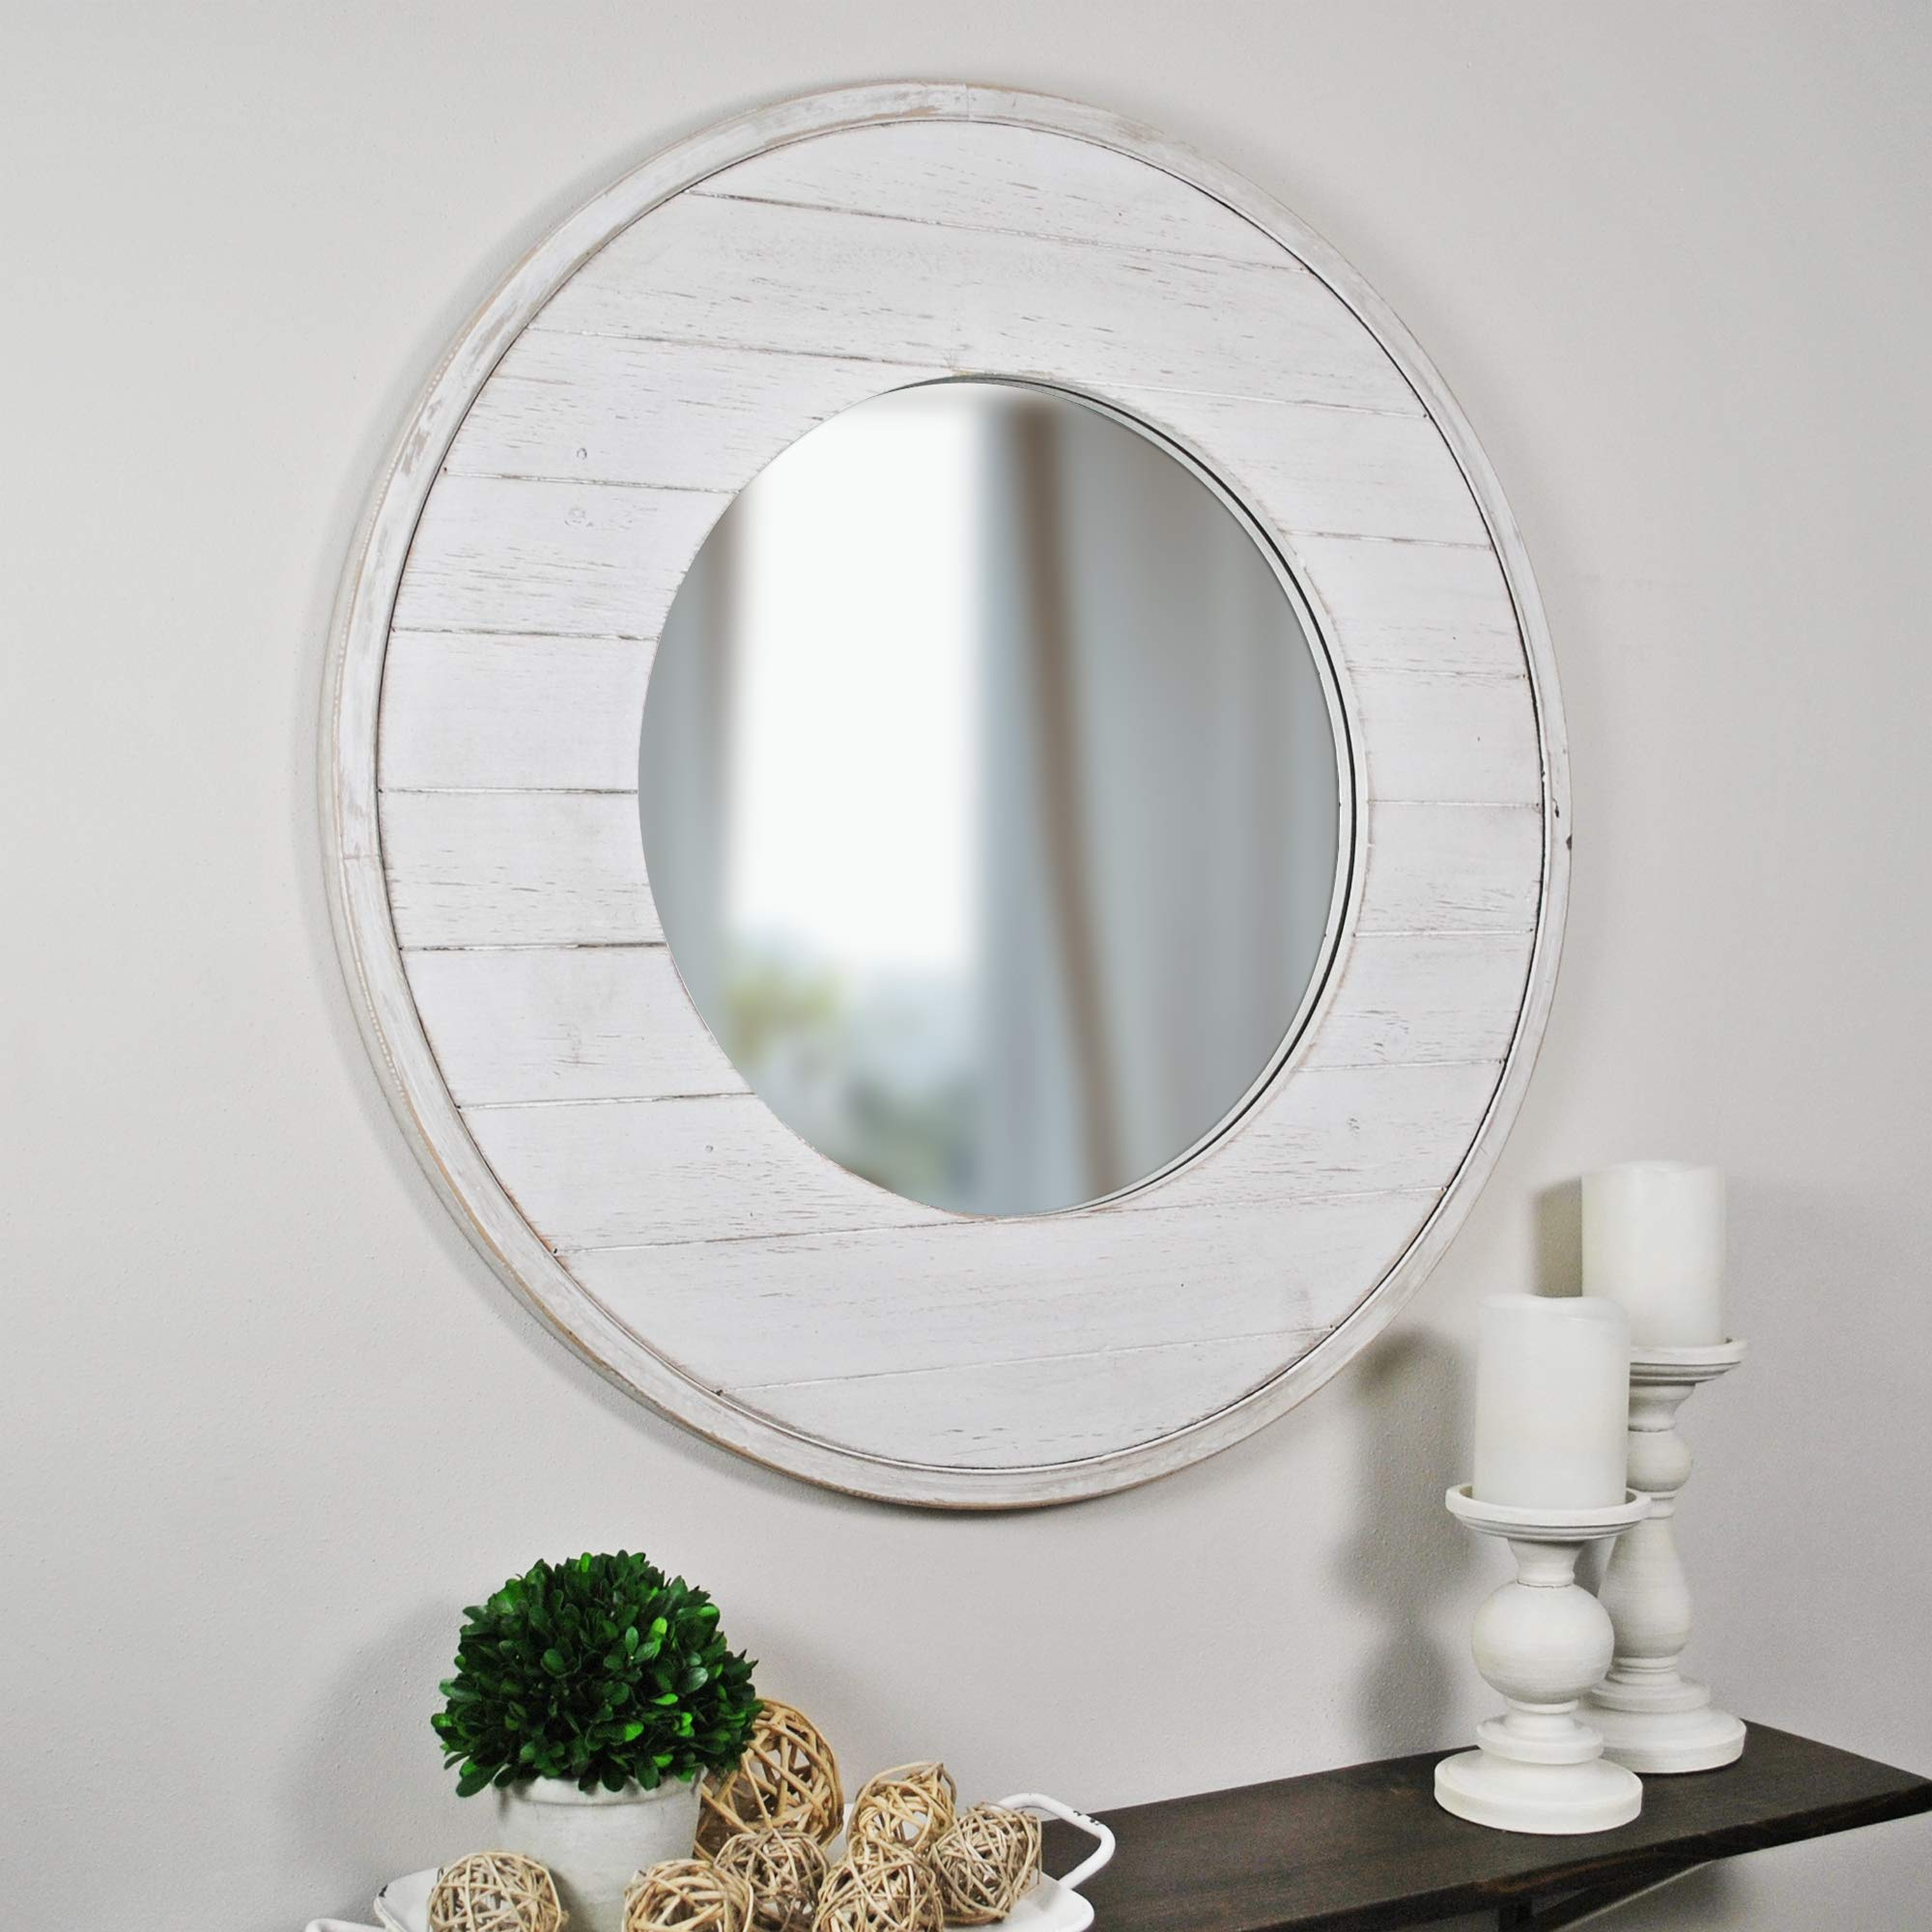 FirsTime & Co. 70021 Ellison Shiplap Accent Wall Mirror, 27'', Aged White by FirsTime & Co.